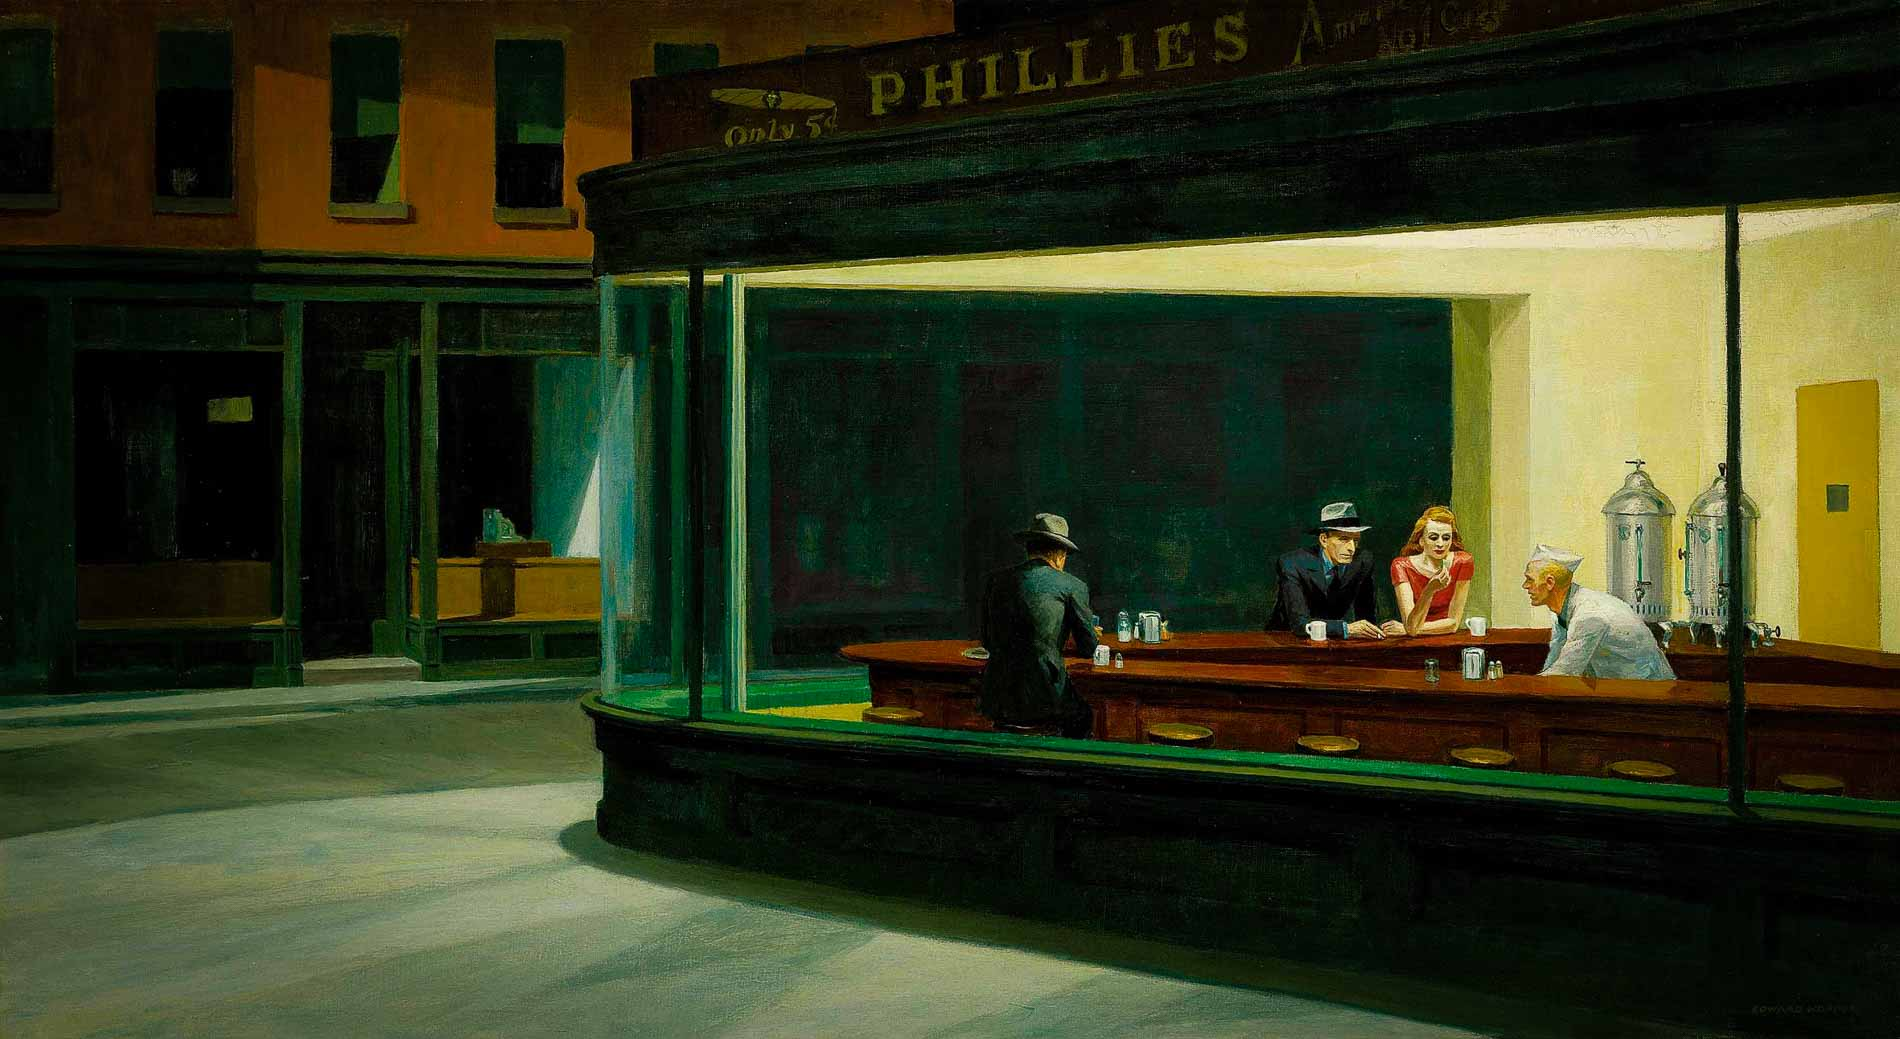 Nighthawks Edward Hopper Figurative Painting in the twentieth century